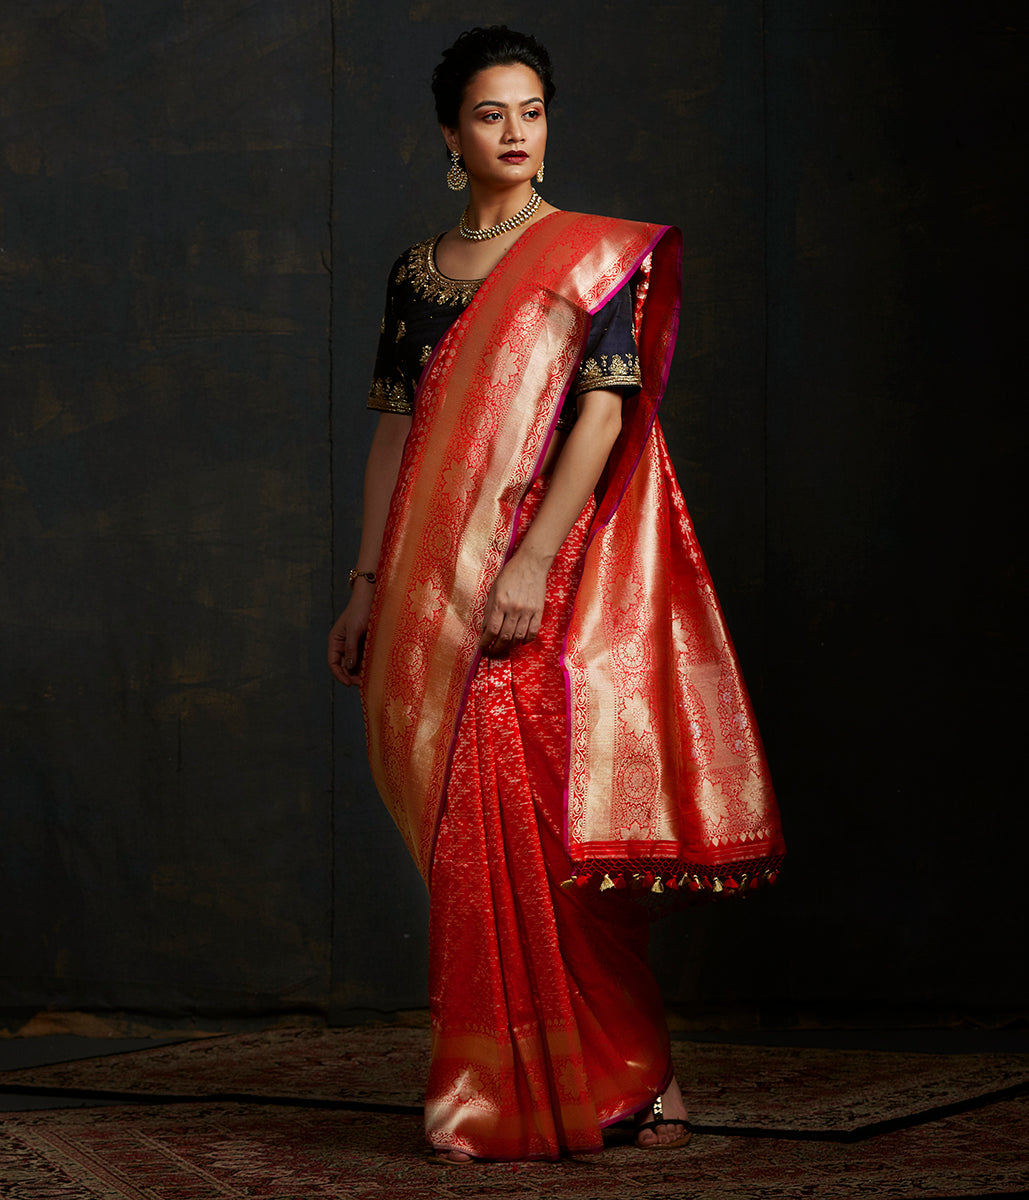 Handwoven Banarasi saree in red with broad floral border